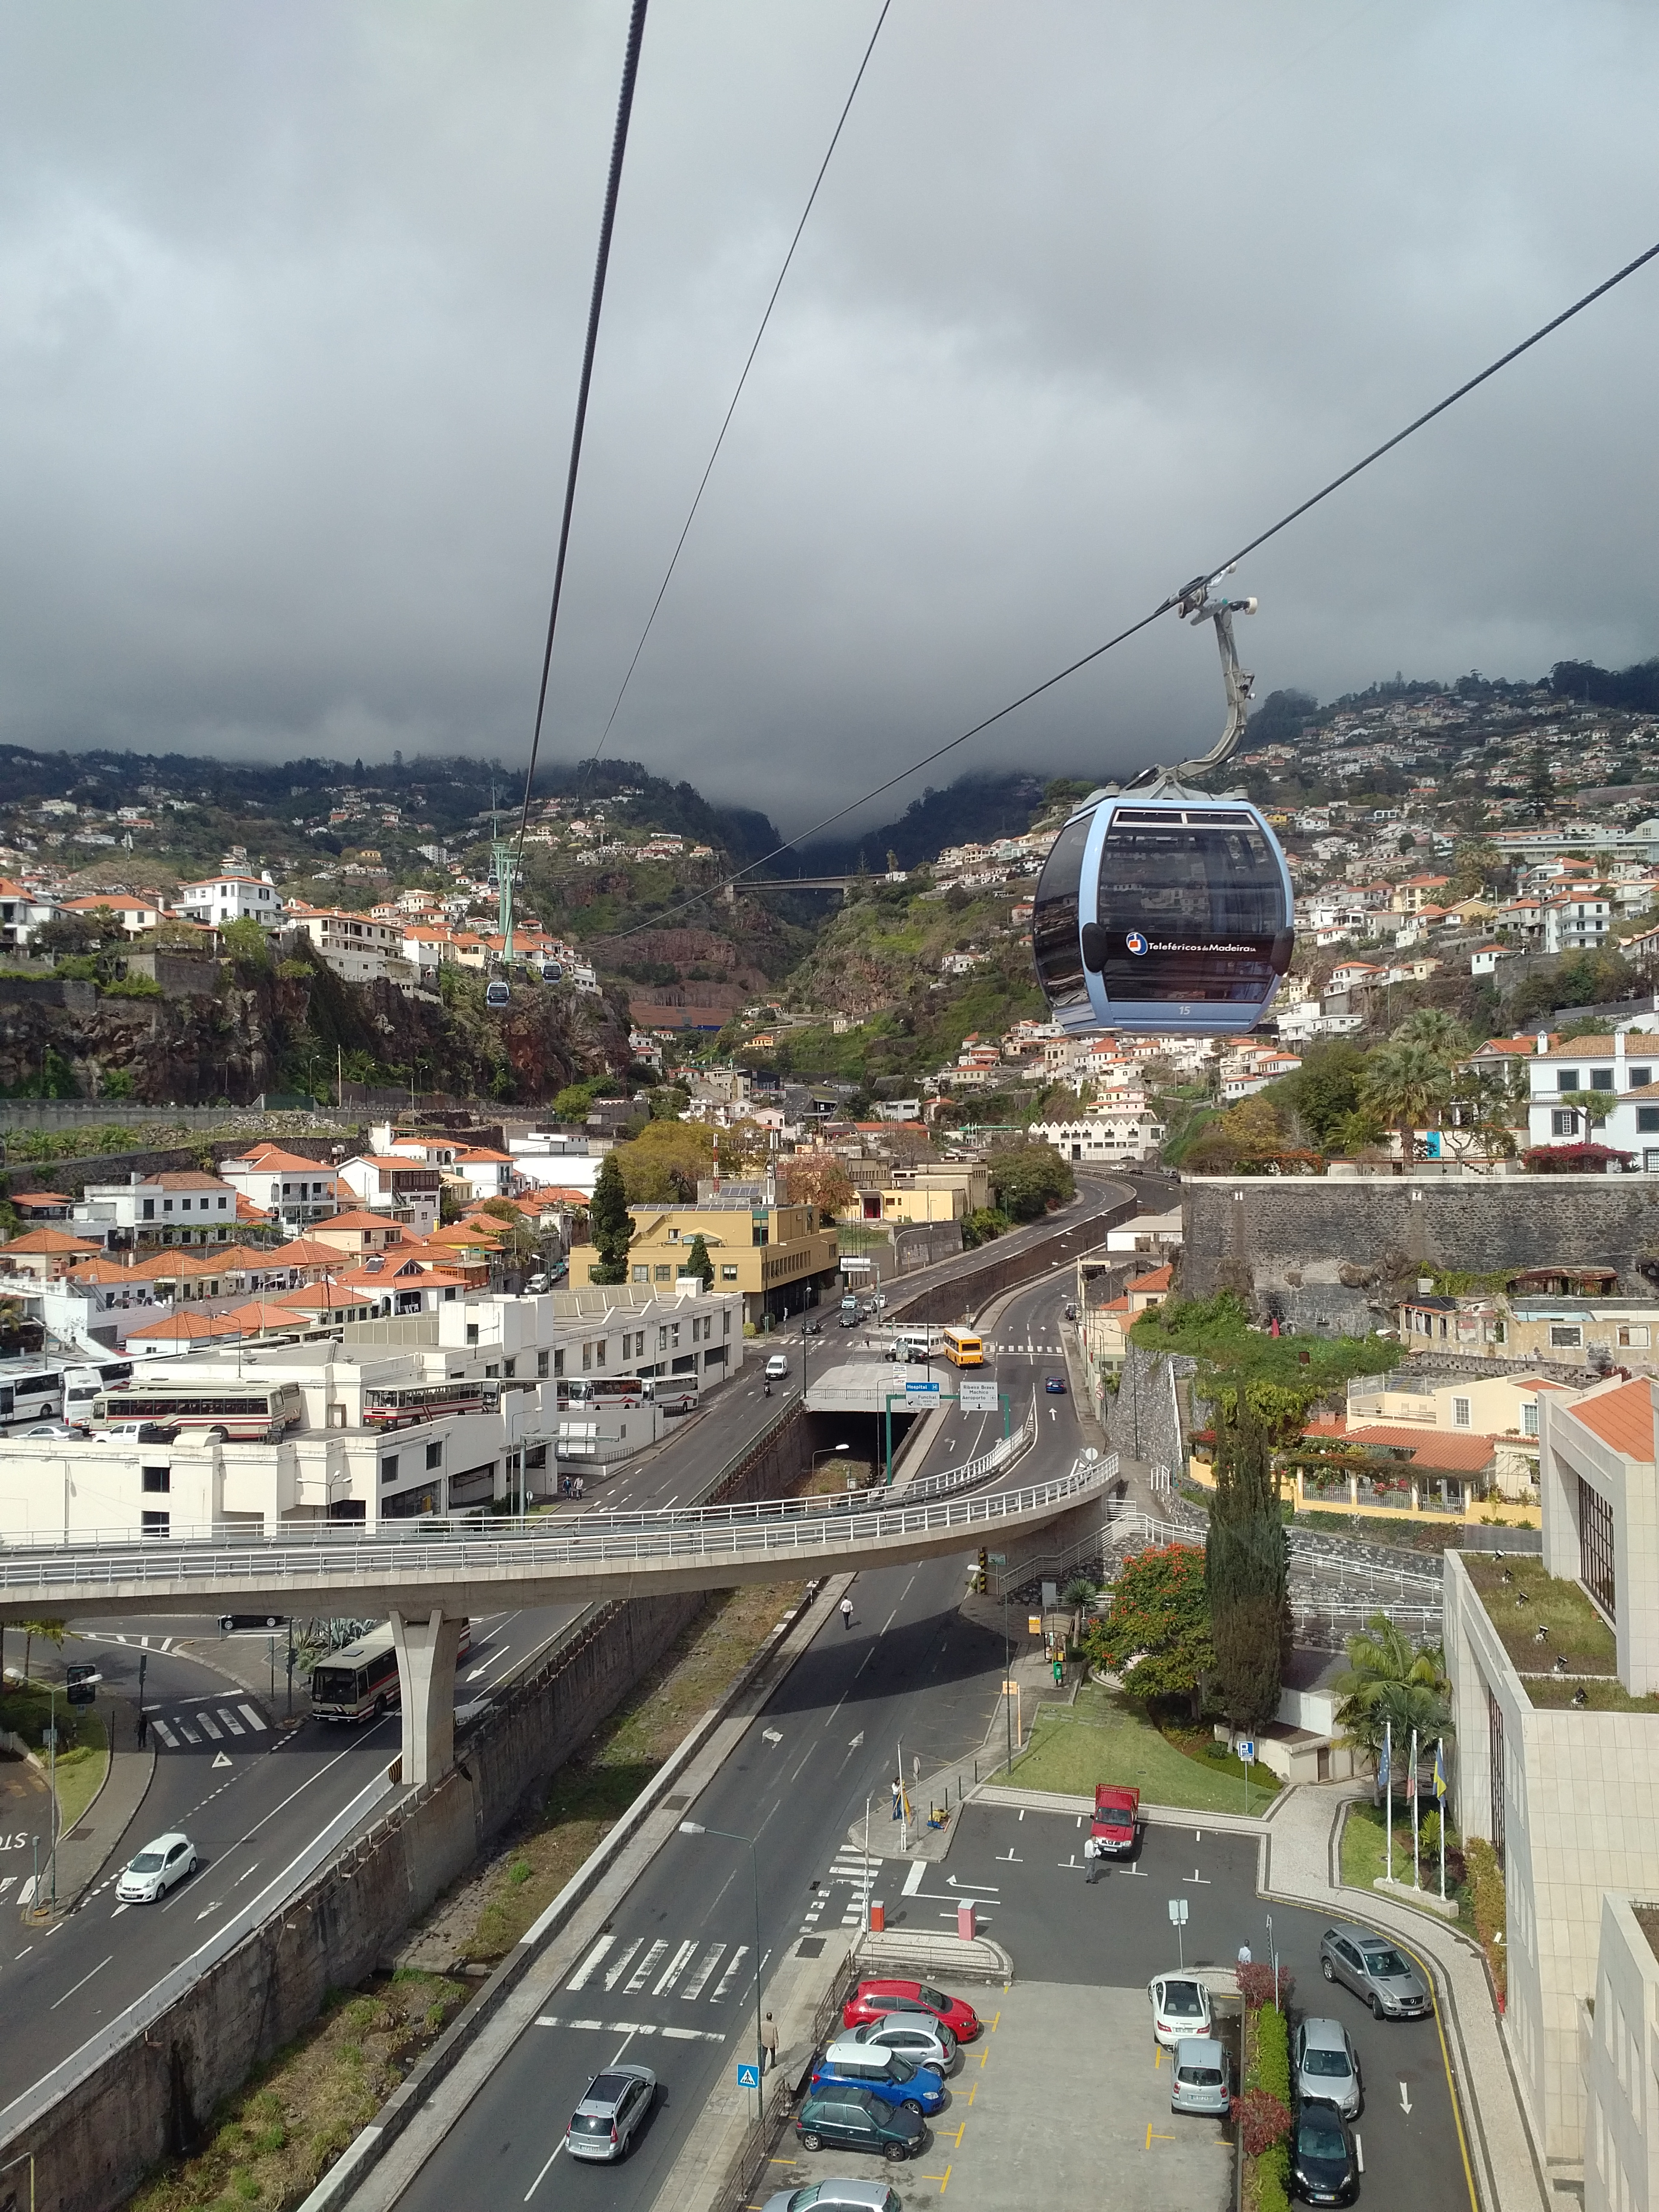 Going up in the Teleferico